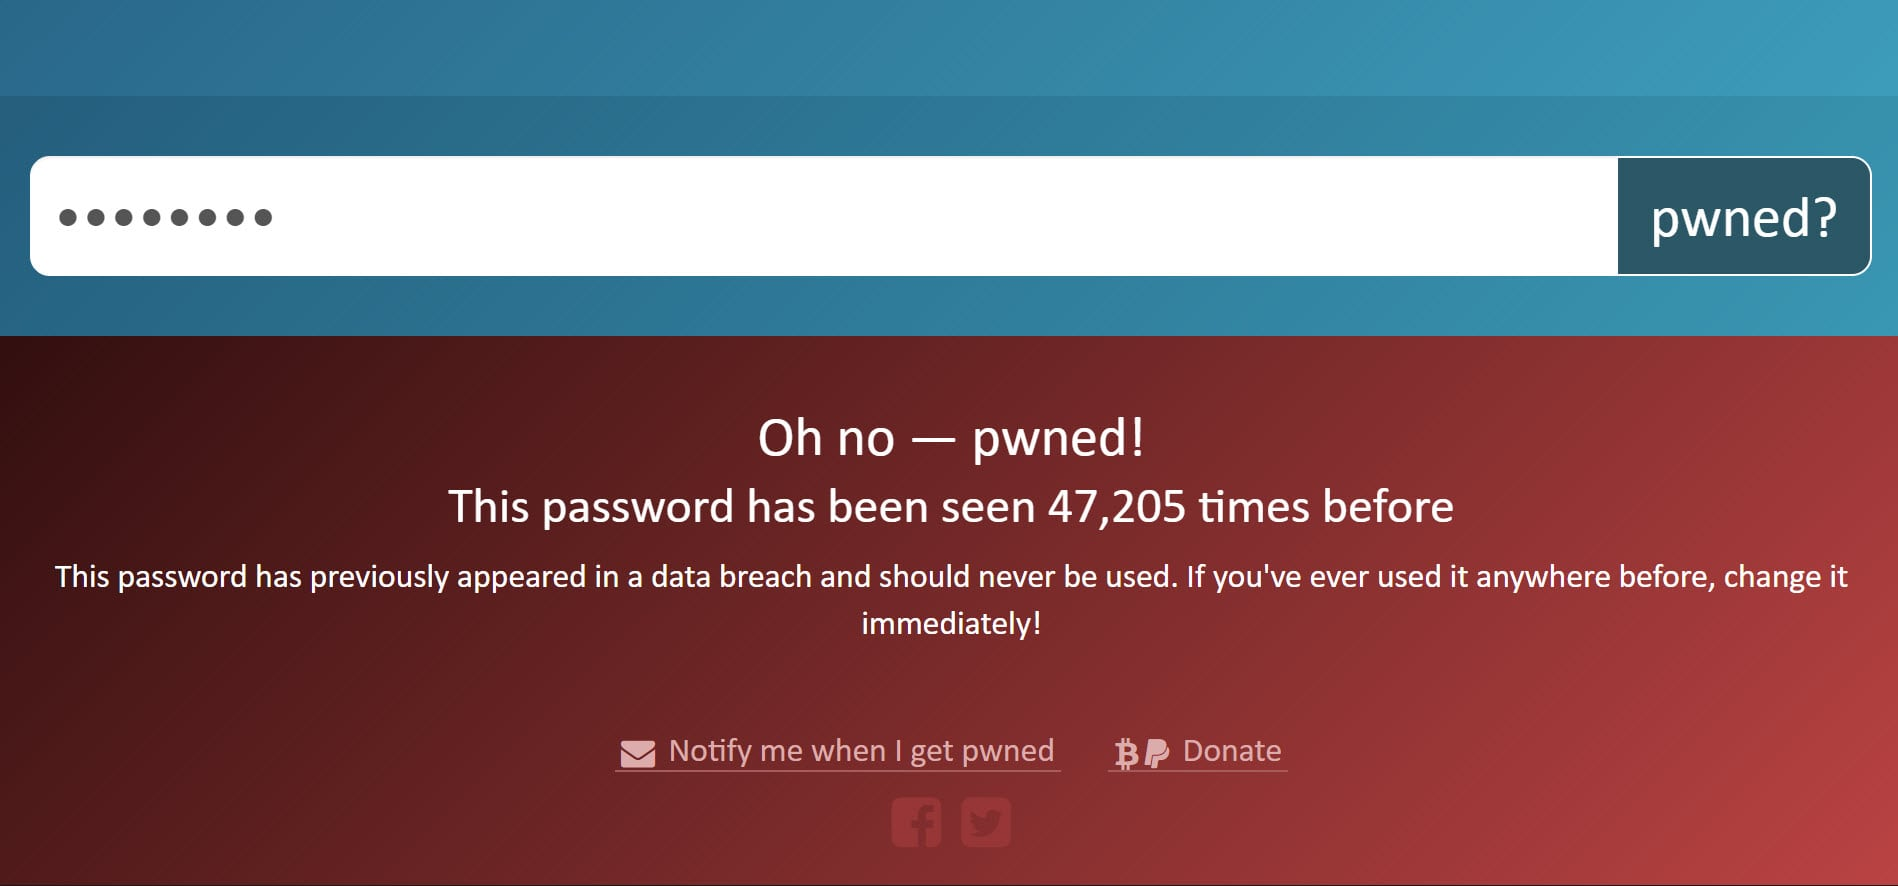 "Pwned Search  - Searching for a Pwned Password - I've Just Launched ""Pwned Passwords"" V2 With Half a Billion Passwords for Download"